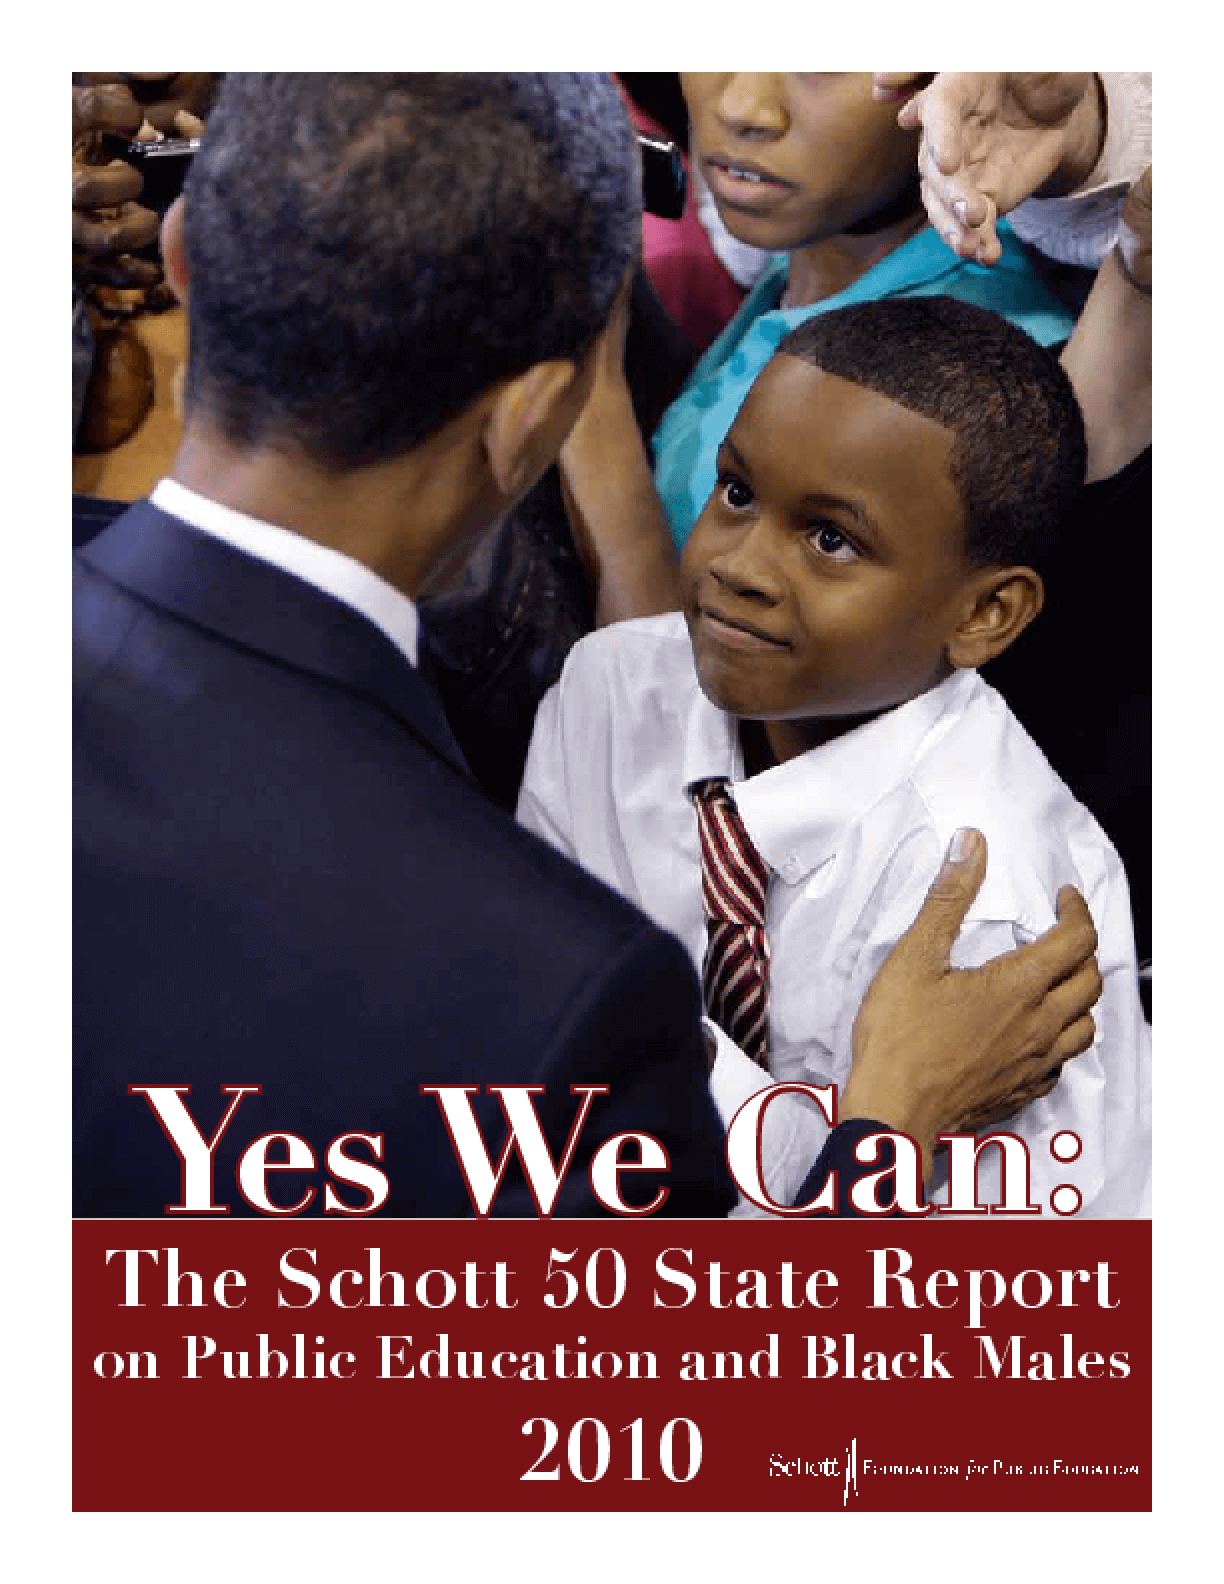 Yes We Can: The Schott 50 State Report on Public Education and Black Males, 2010